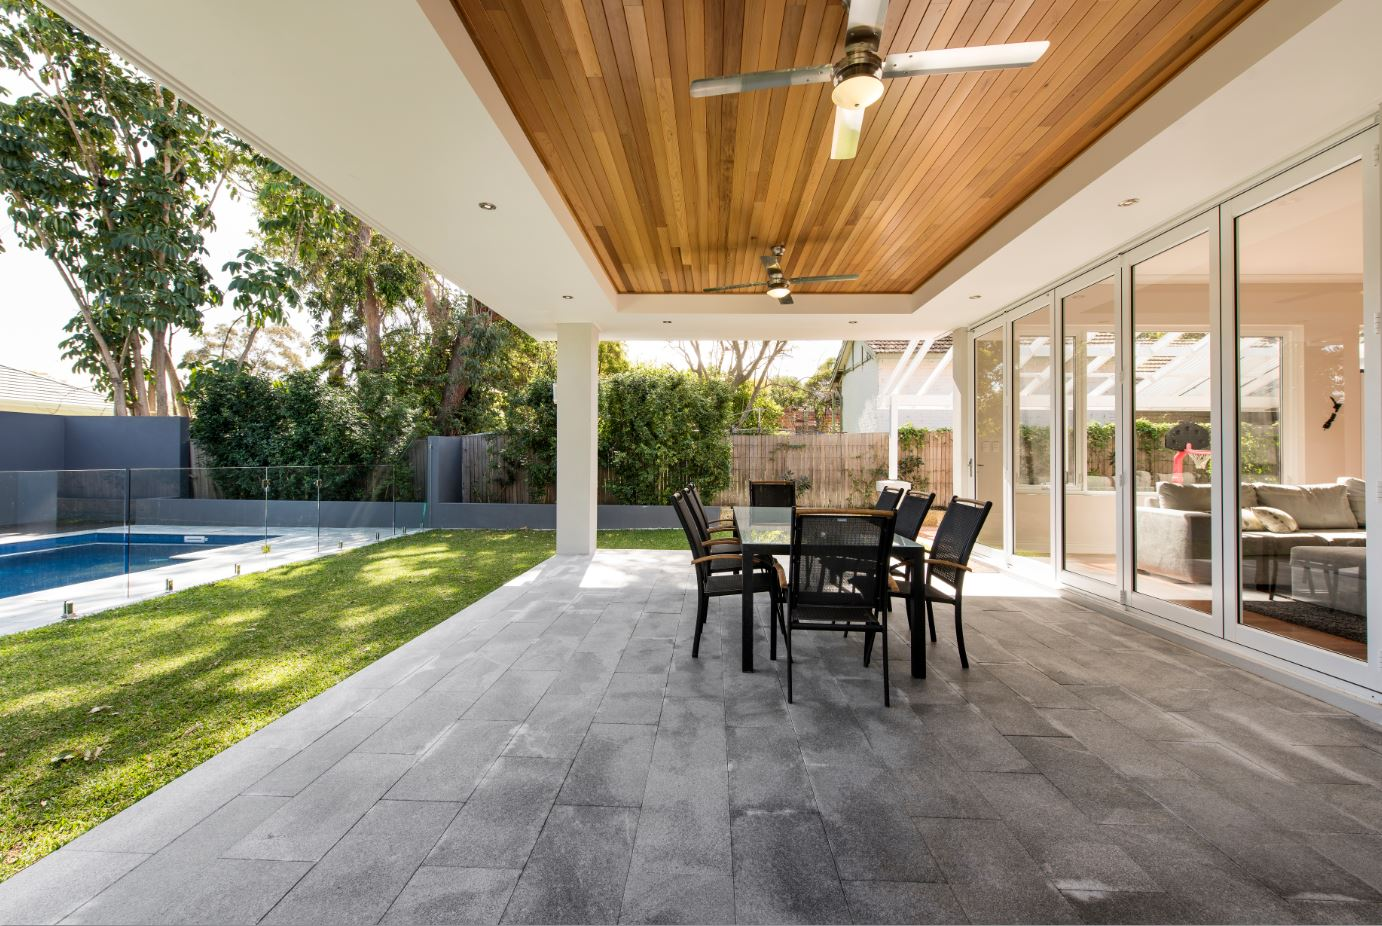 The coffered ceiling in this alfresco area is lined with cedar, and it is a feature that raises the quality of the home. Downlights surrounding can be dimmed, making it a beautiful space in the evenings.